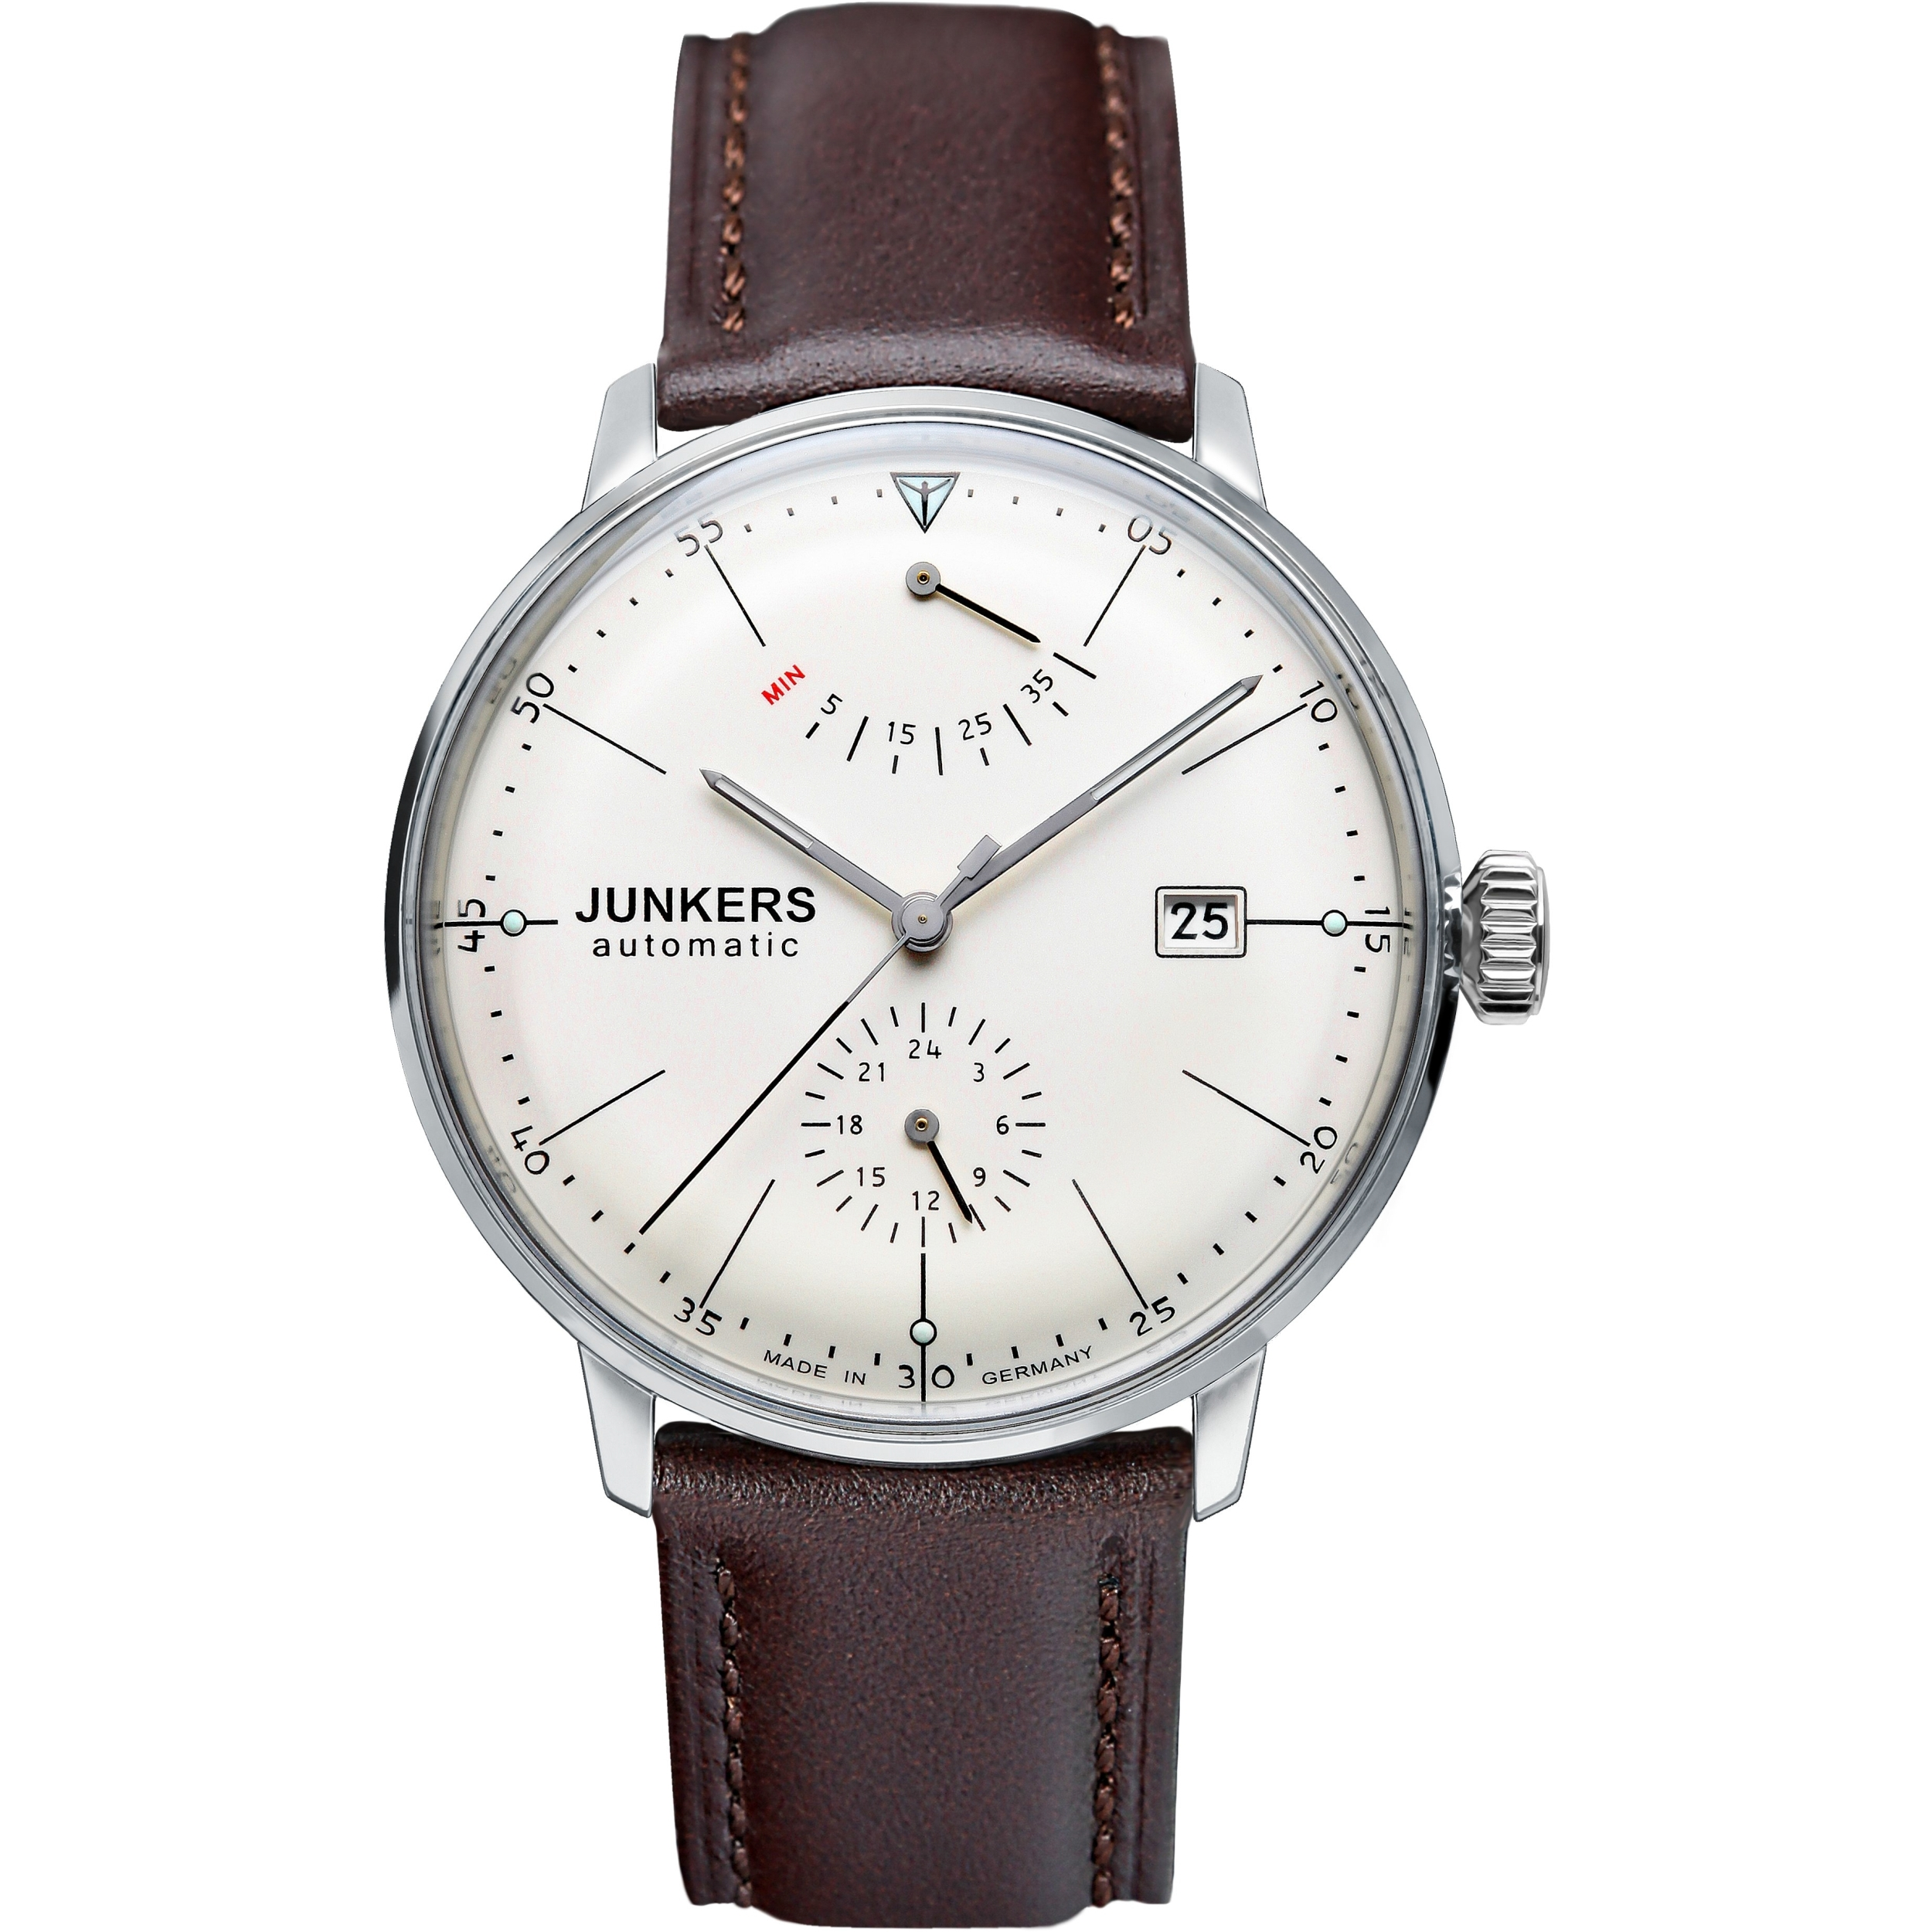 gents watchshop watches mens bauhaus automatic watch com junkers